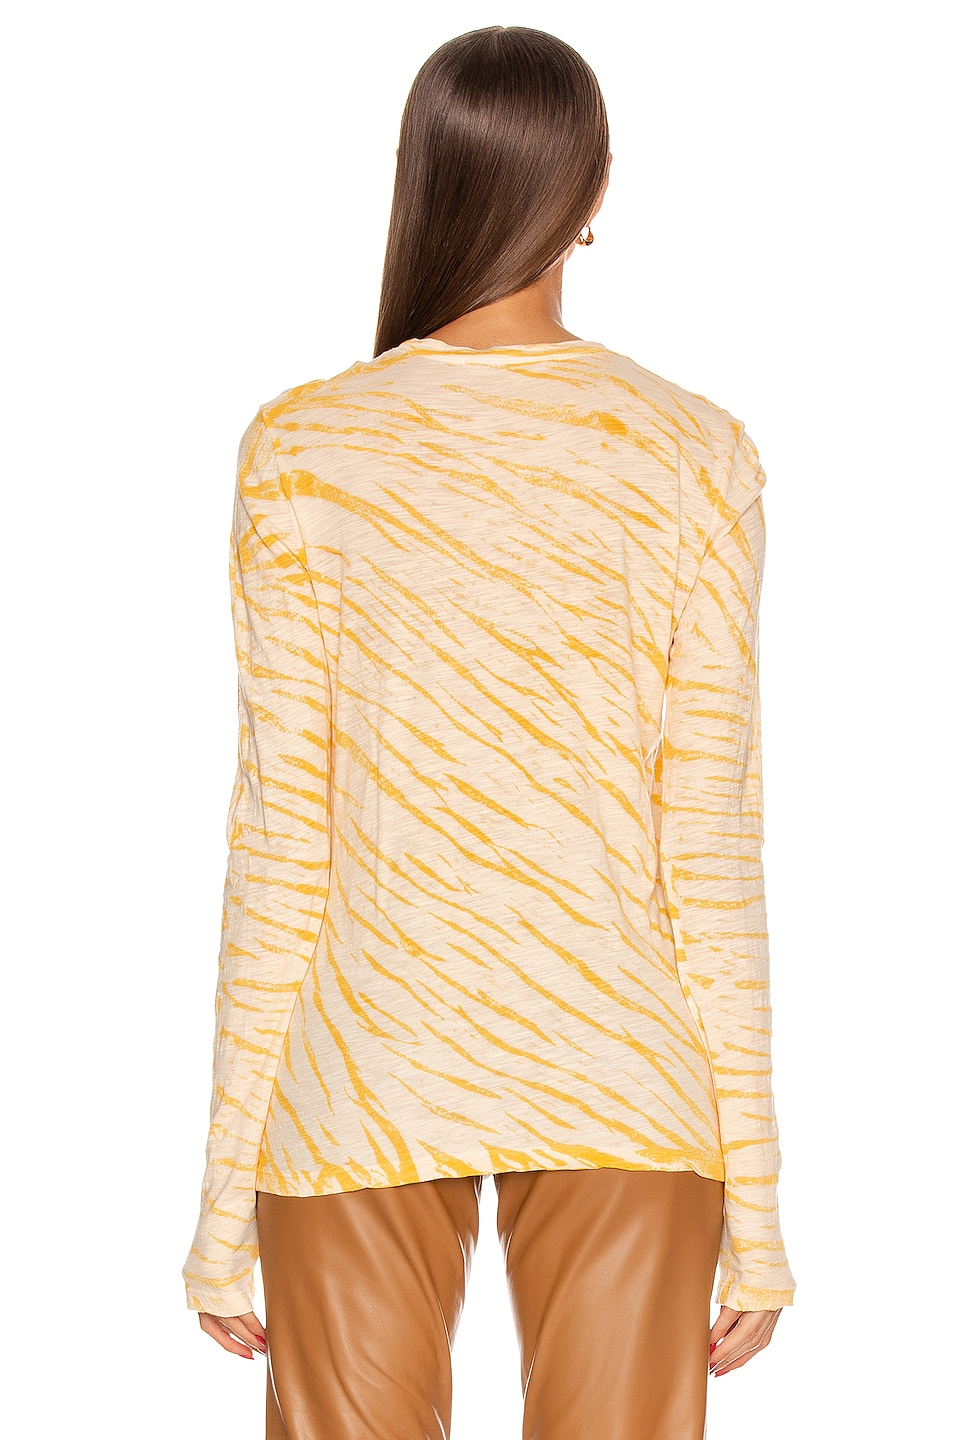 Image 3 of Proenza Schouler Long Sleeve Tie Dye Tee in Peach & Apricot Diagonal